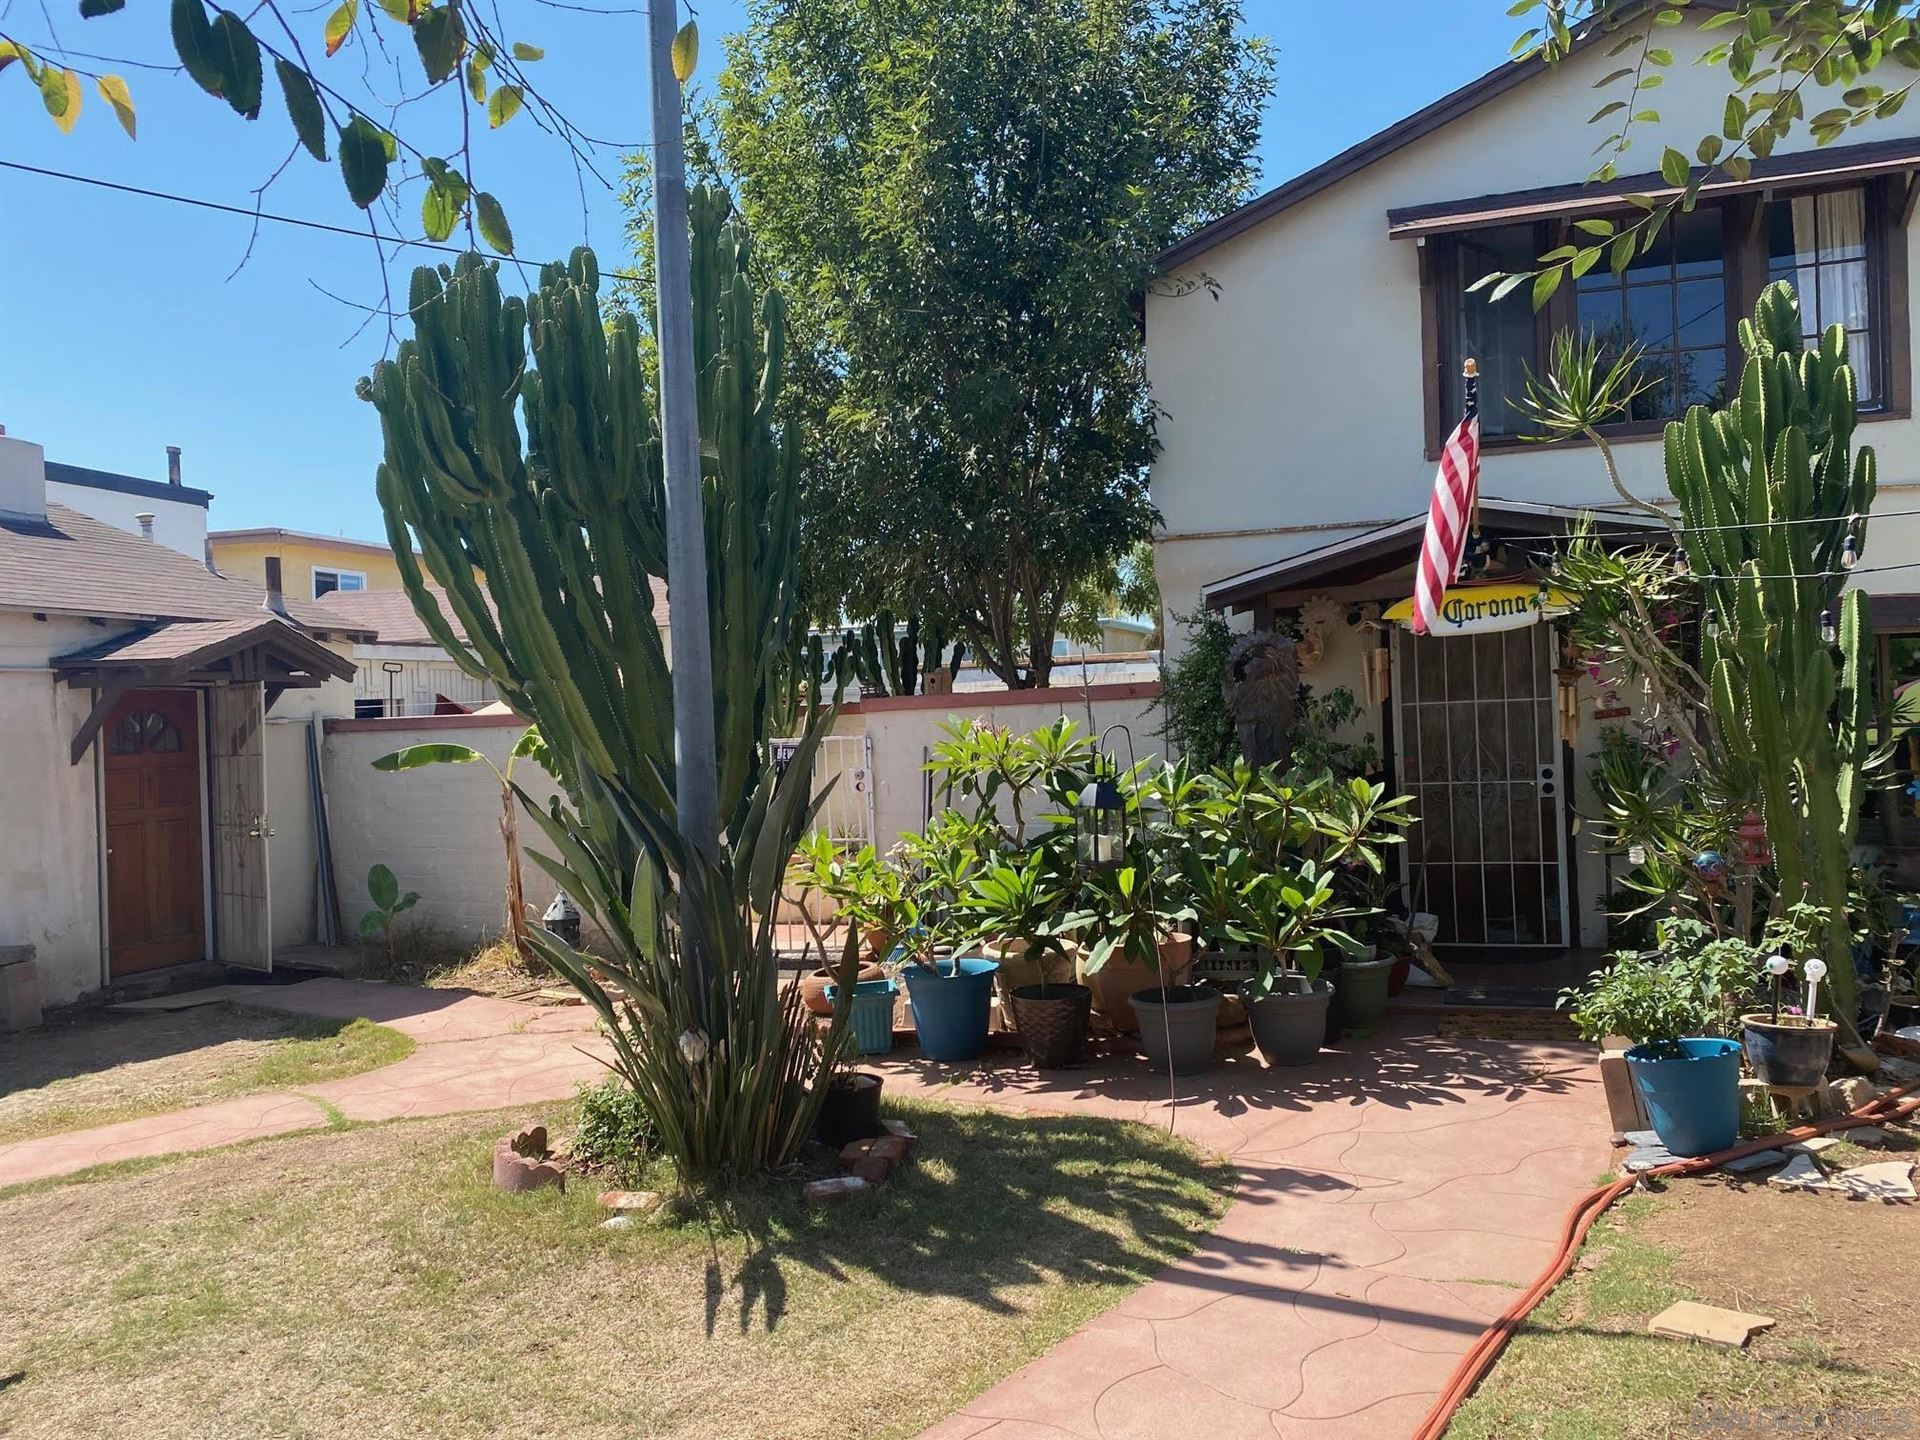 Photo of 1424-26 14th St, Imperial Beach, CA 91932 (MLS # 210026633)